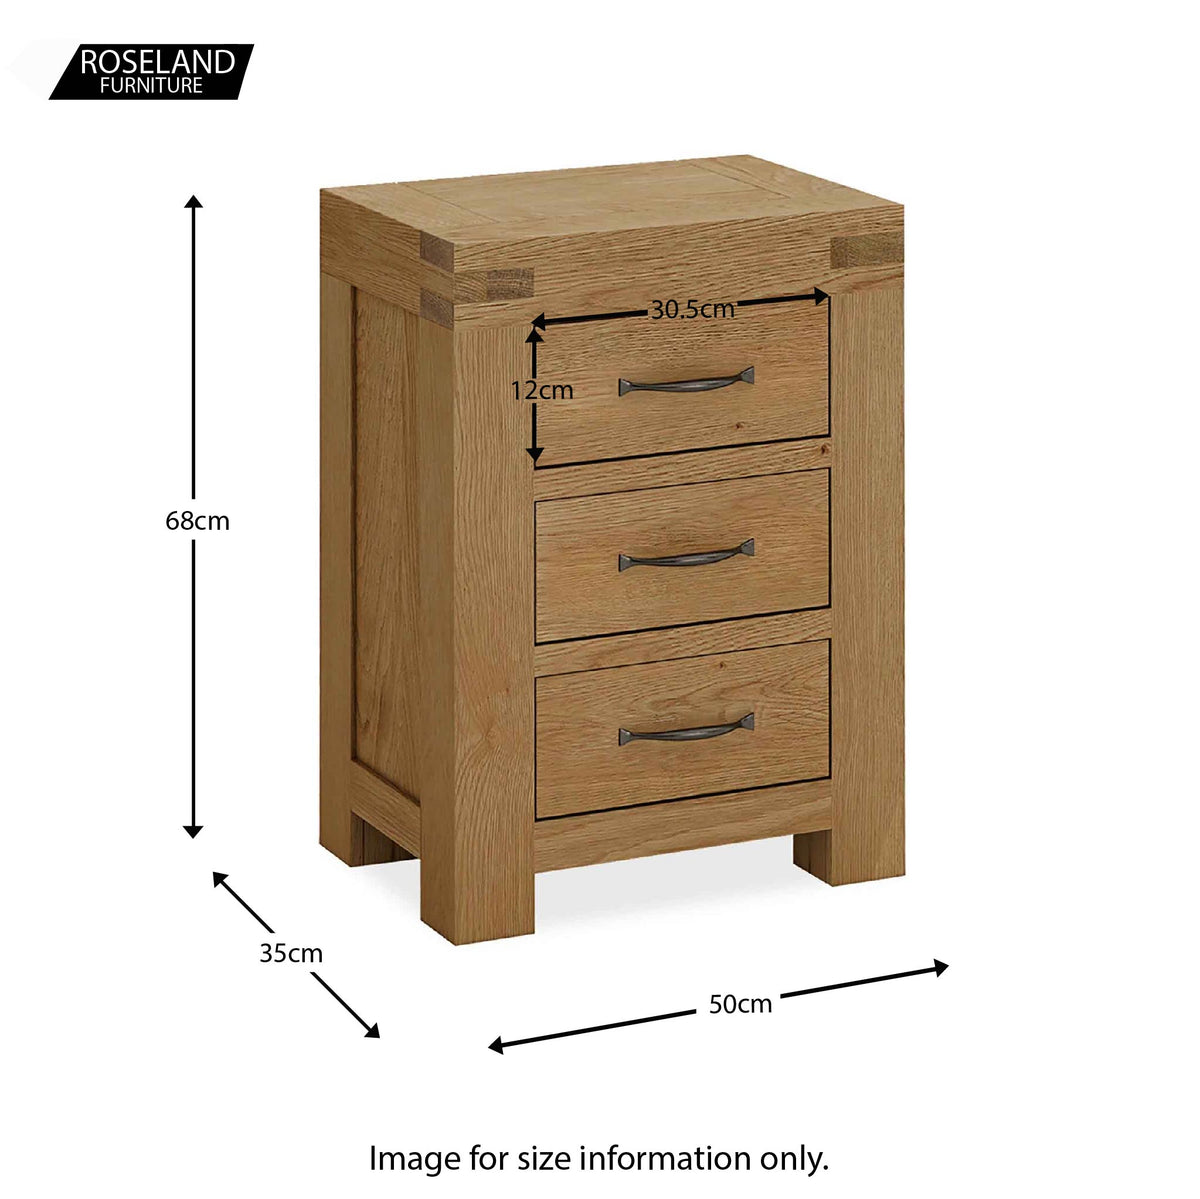 Abbey Grande Oak 3 Drawer Bedside Table - Size guide